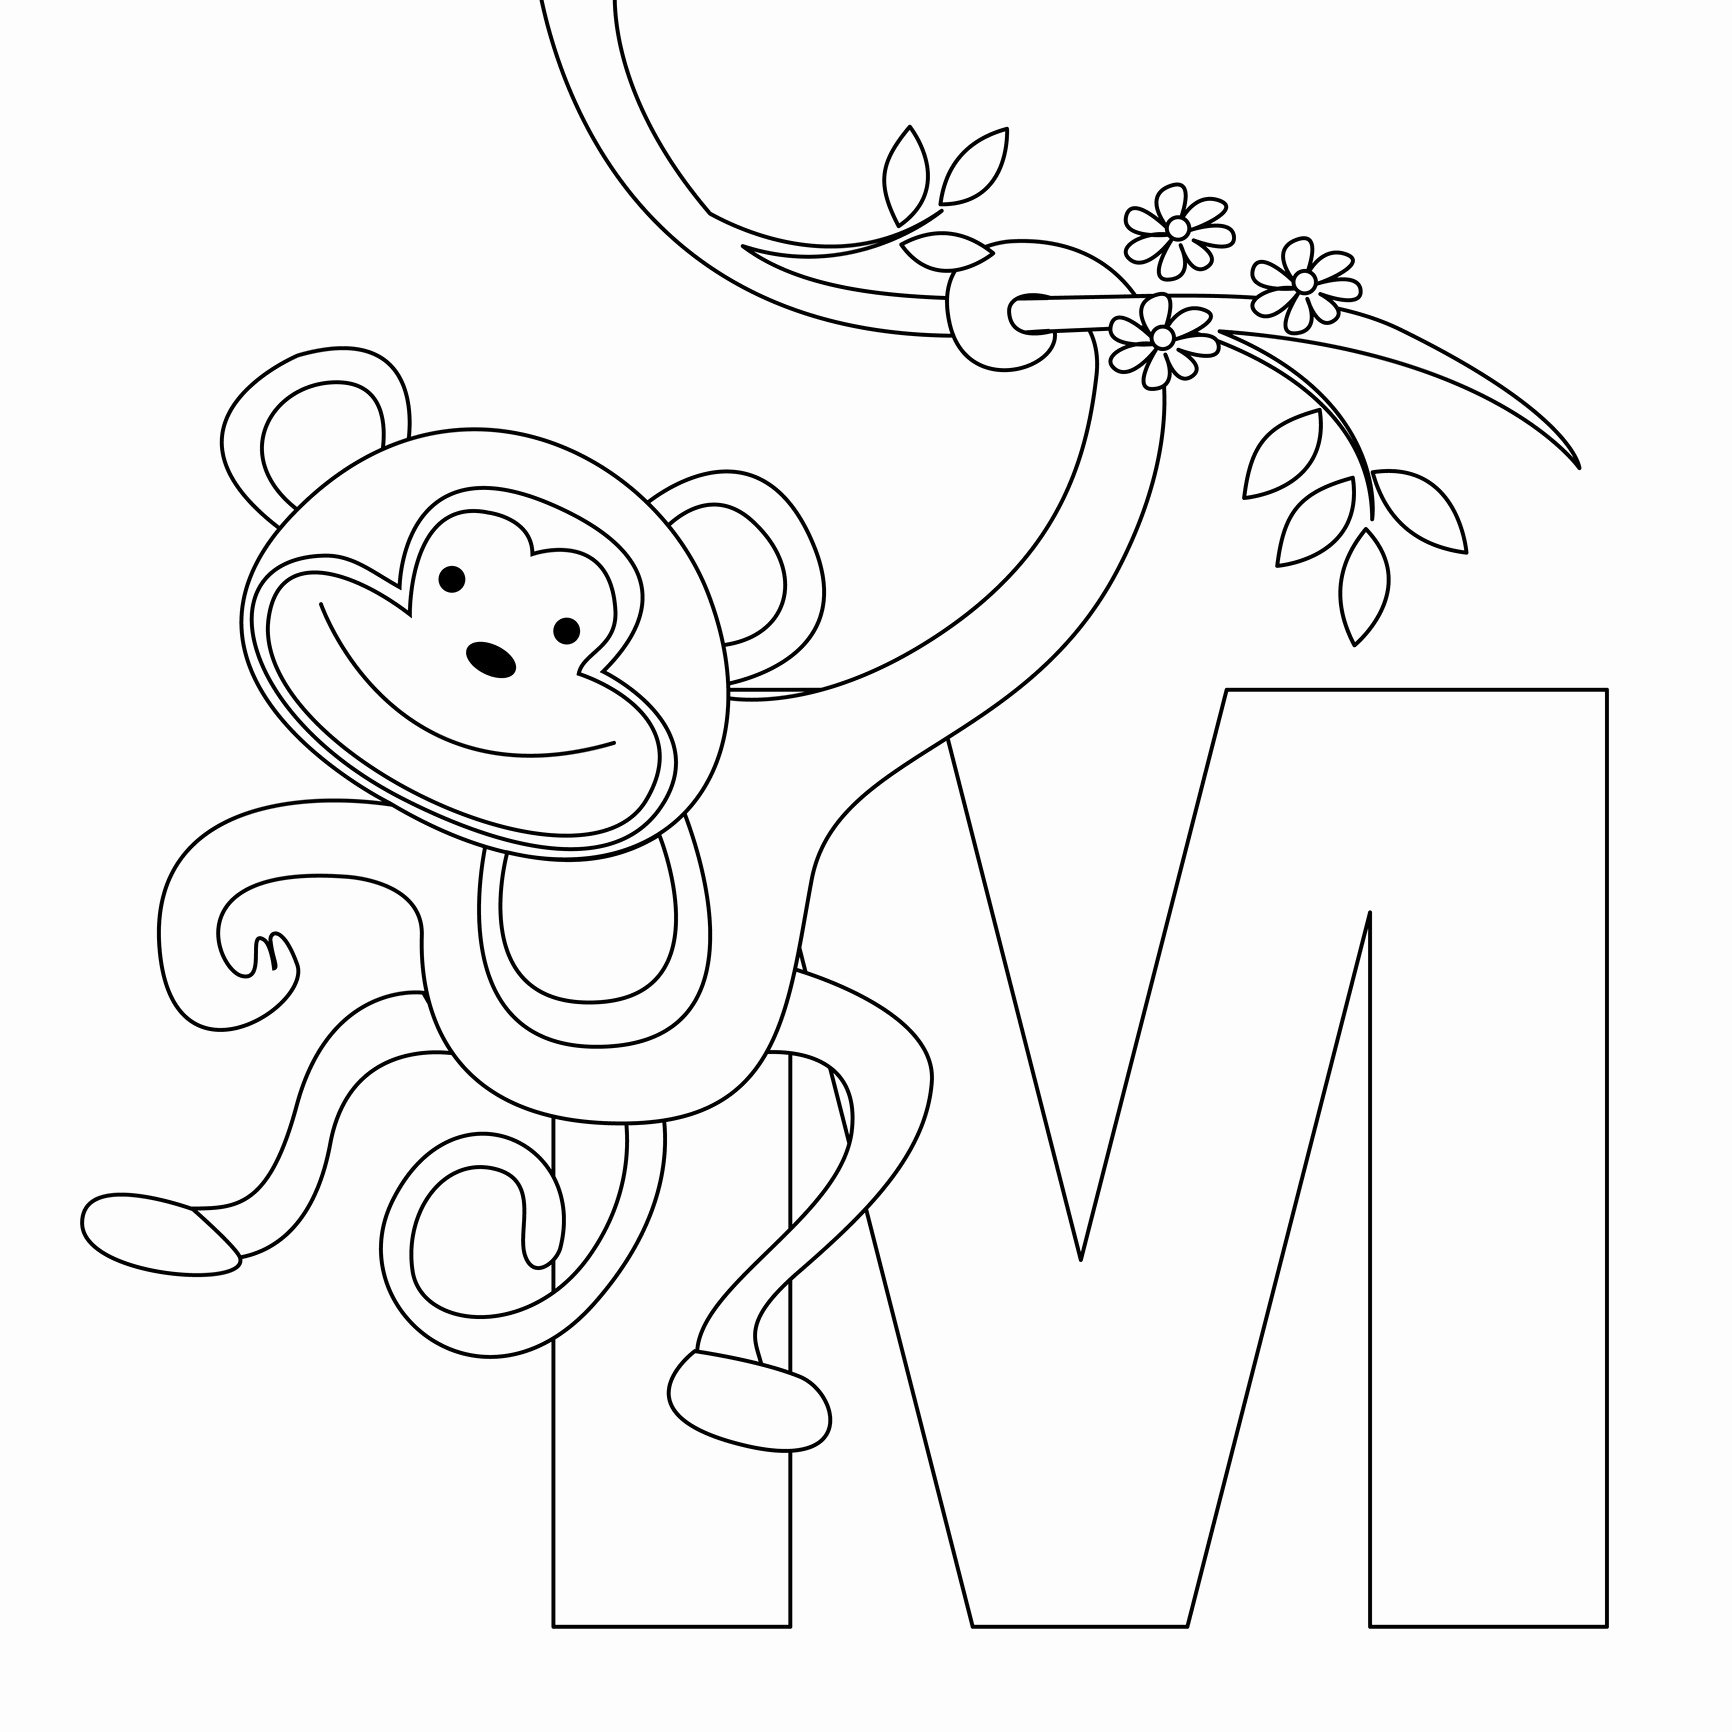 Alphabet Letters to Print Free Inspirational Free Printable Alphabet Coloring Pages for Kids Best